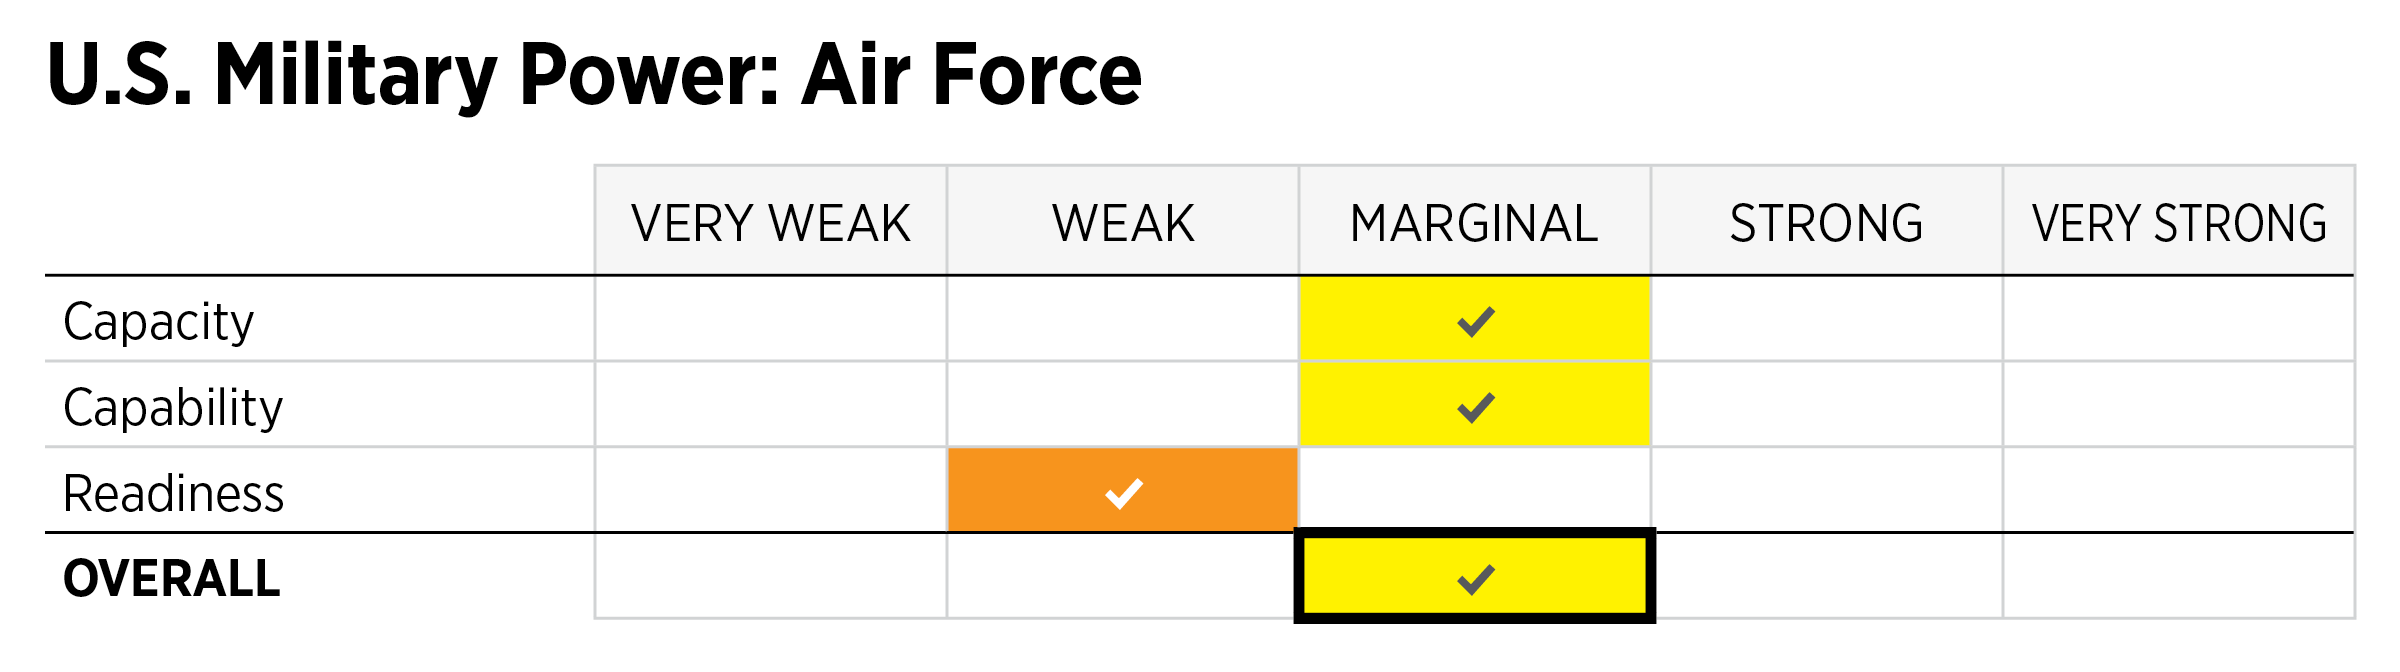 2019_IndexOfUSMilitaryStrength_ASSESSMENTS_Power_USAF.png